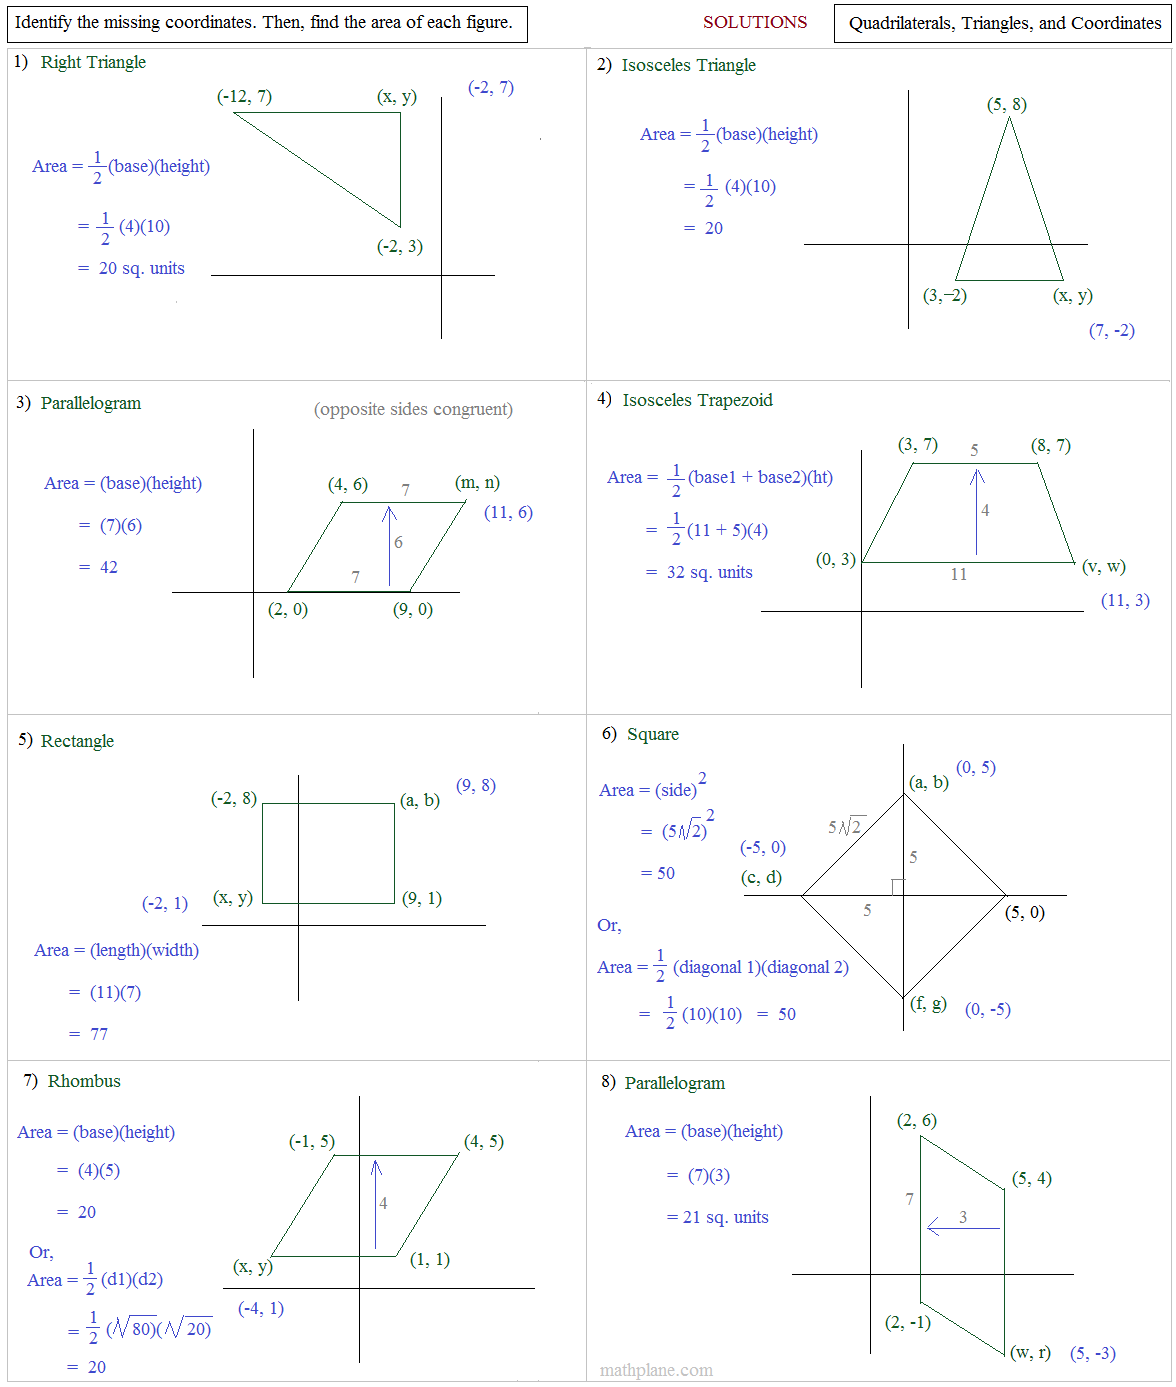 worksheet Area And Perimeter Of Polygons Worksheet area and perimeter of polygons worksheets matrix multiplication worksheets